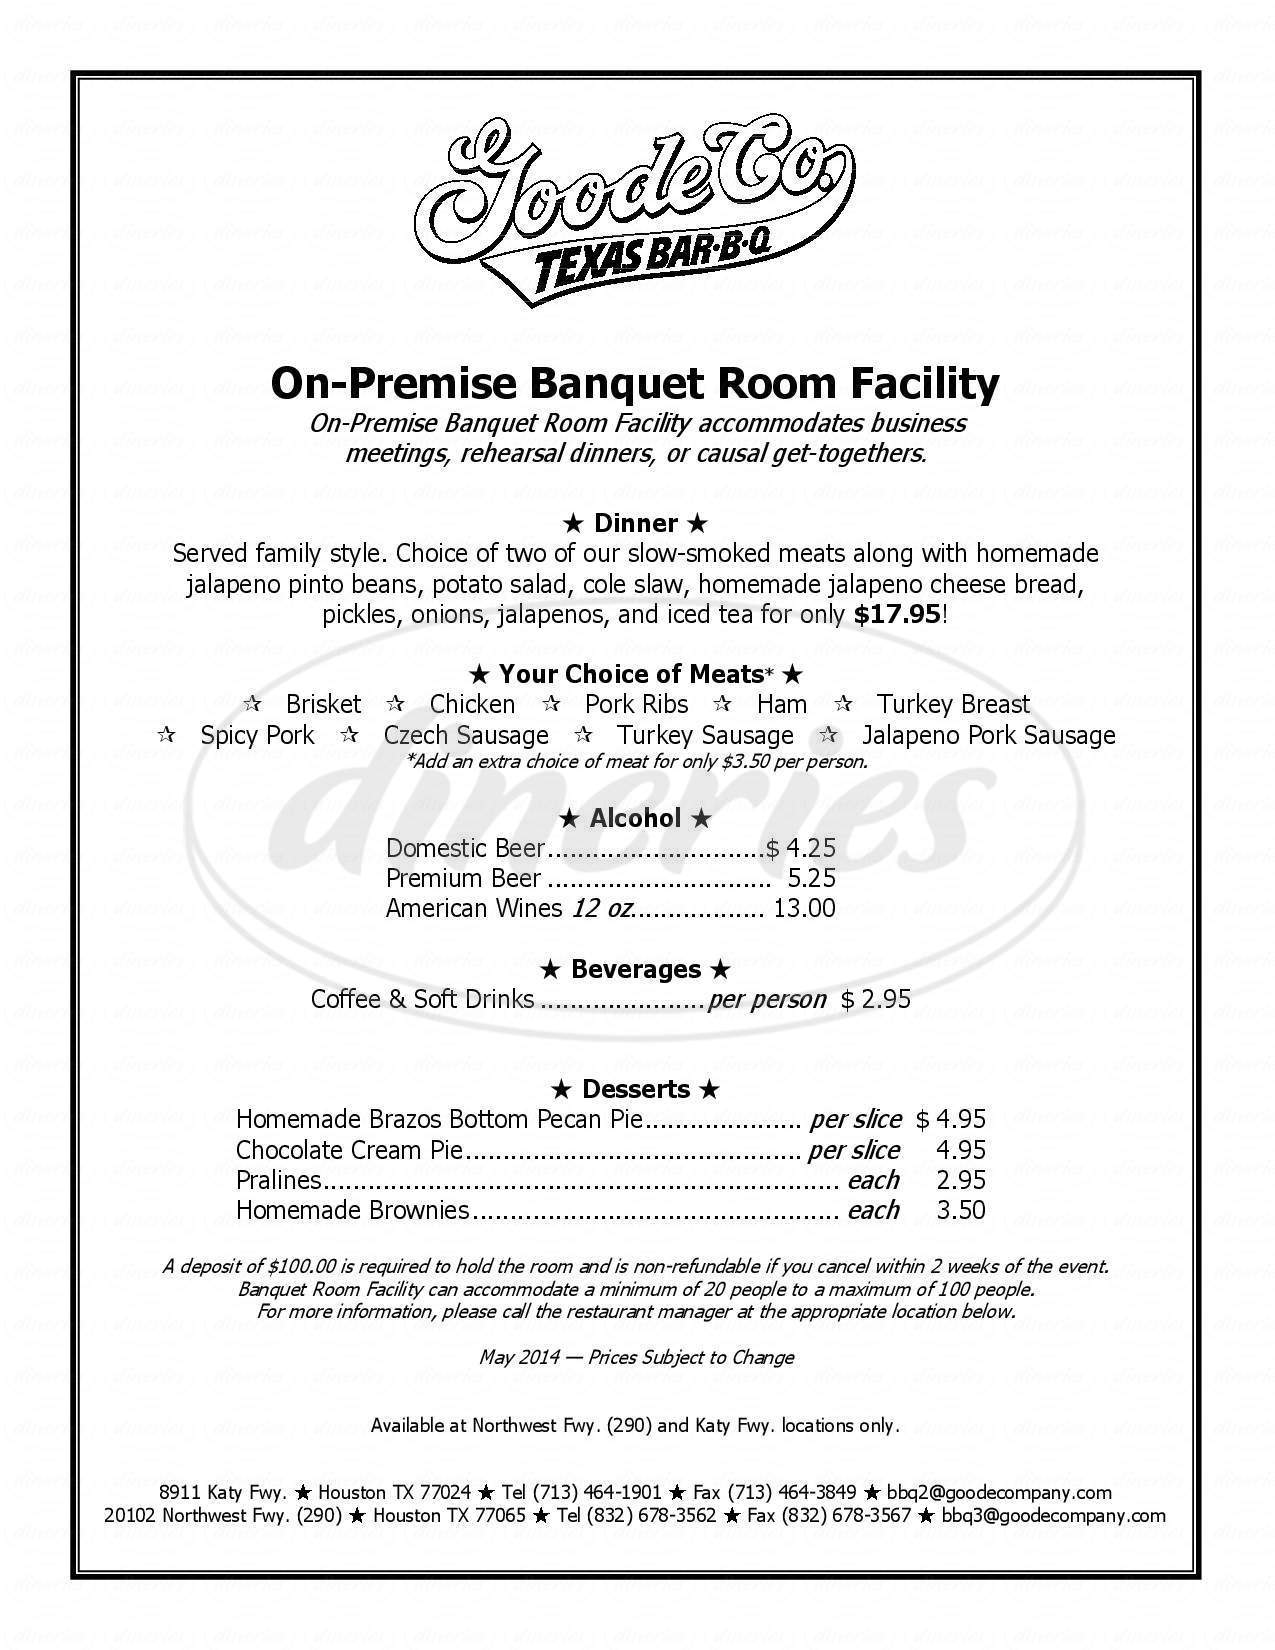 menu for Goode Company Barbeque